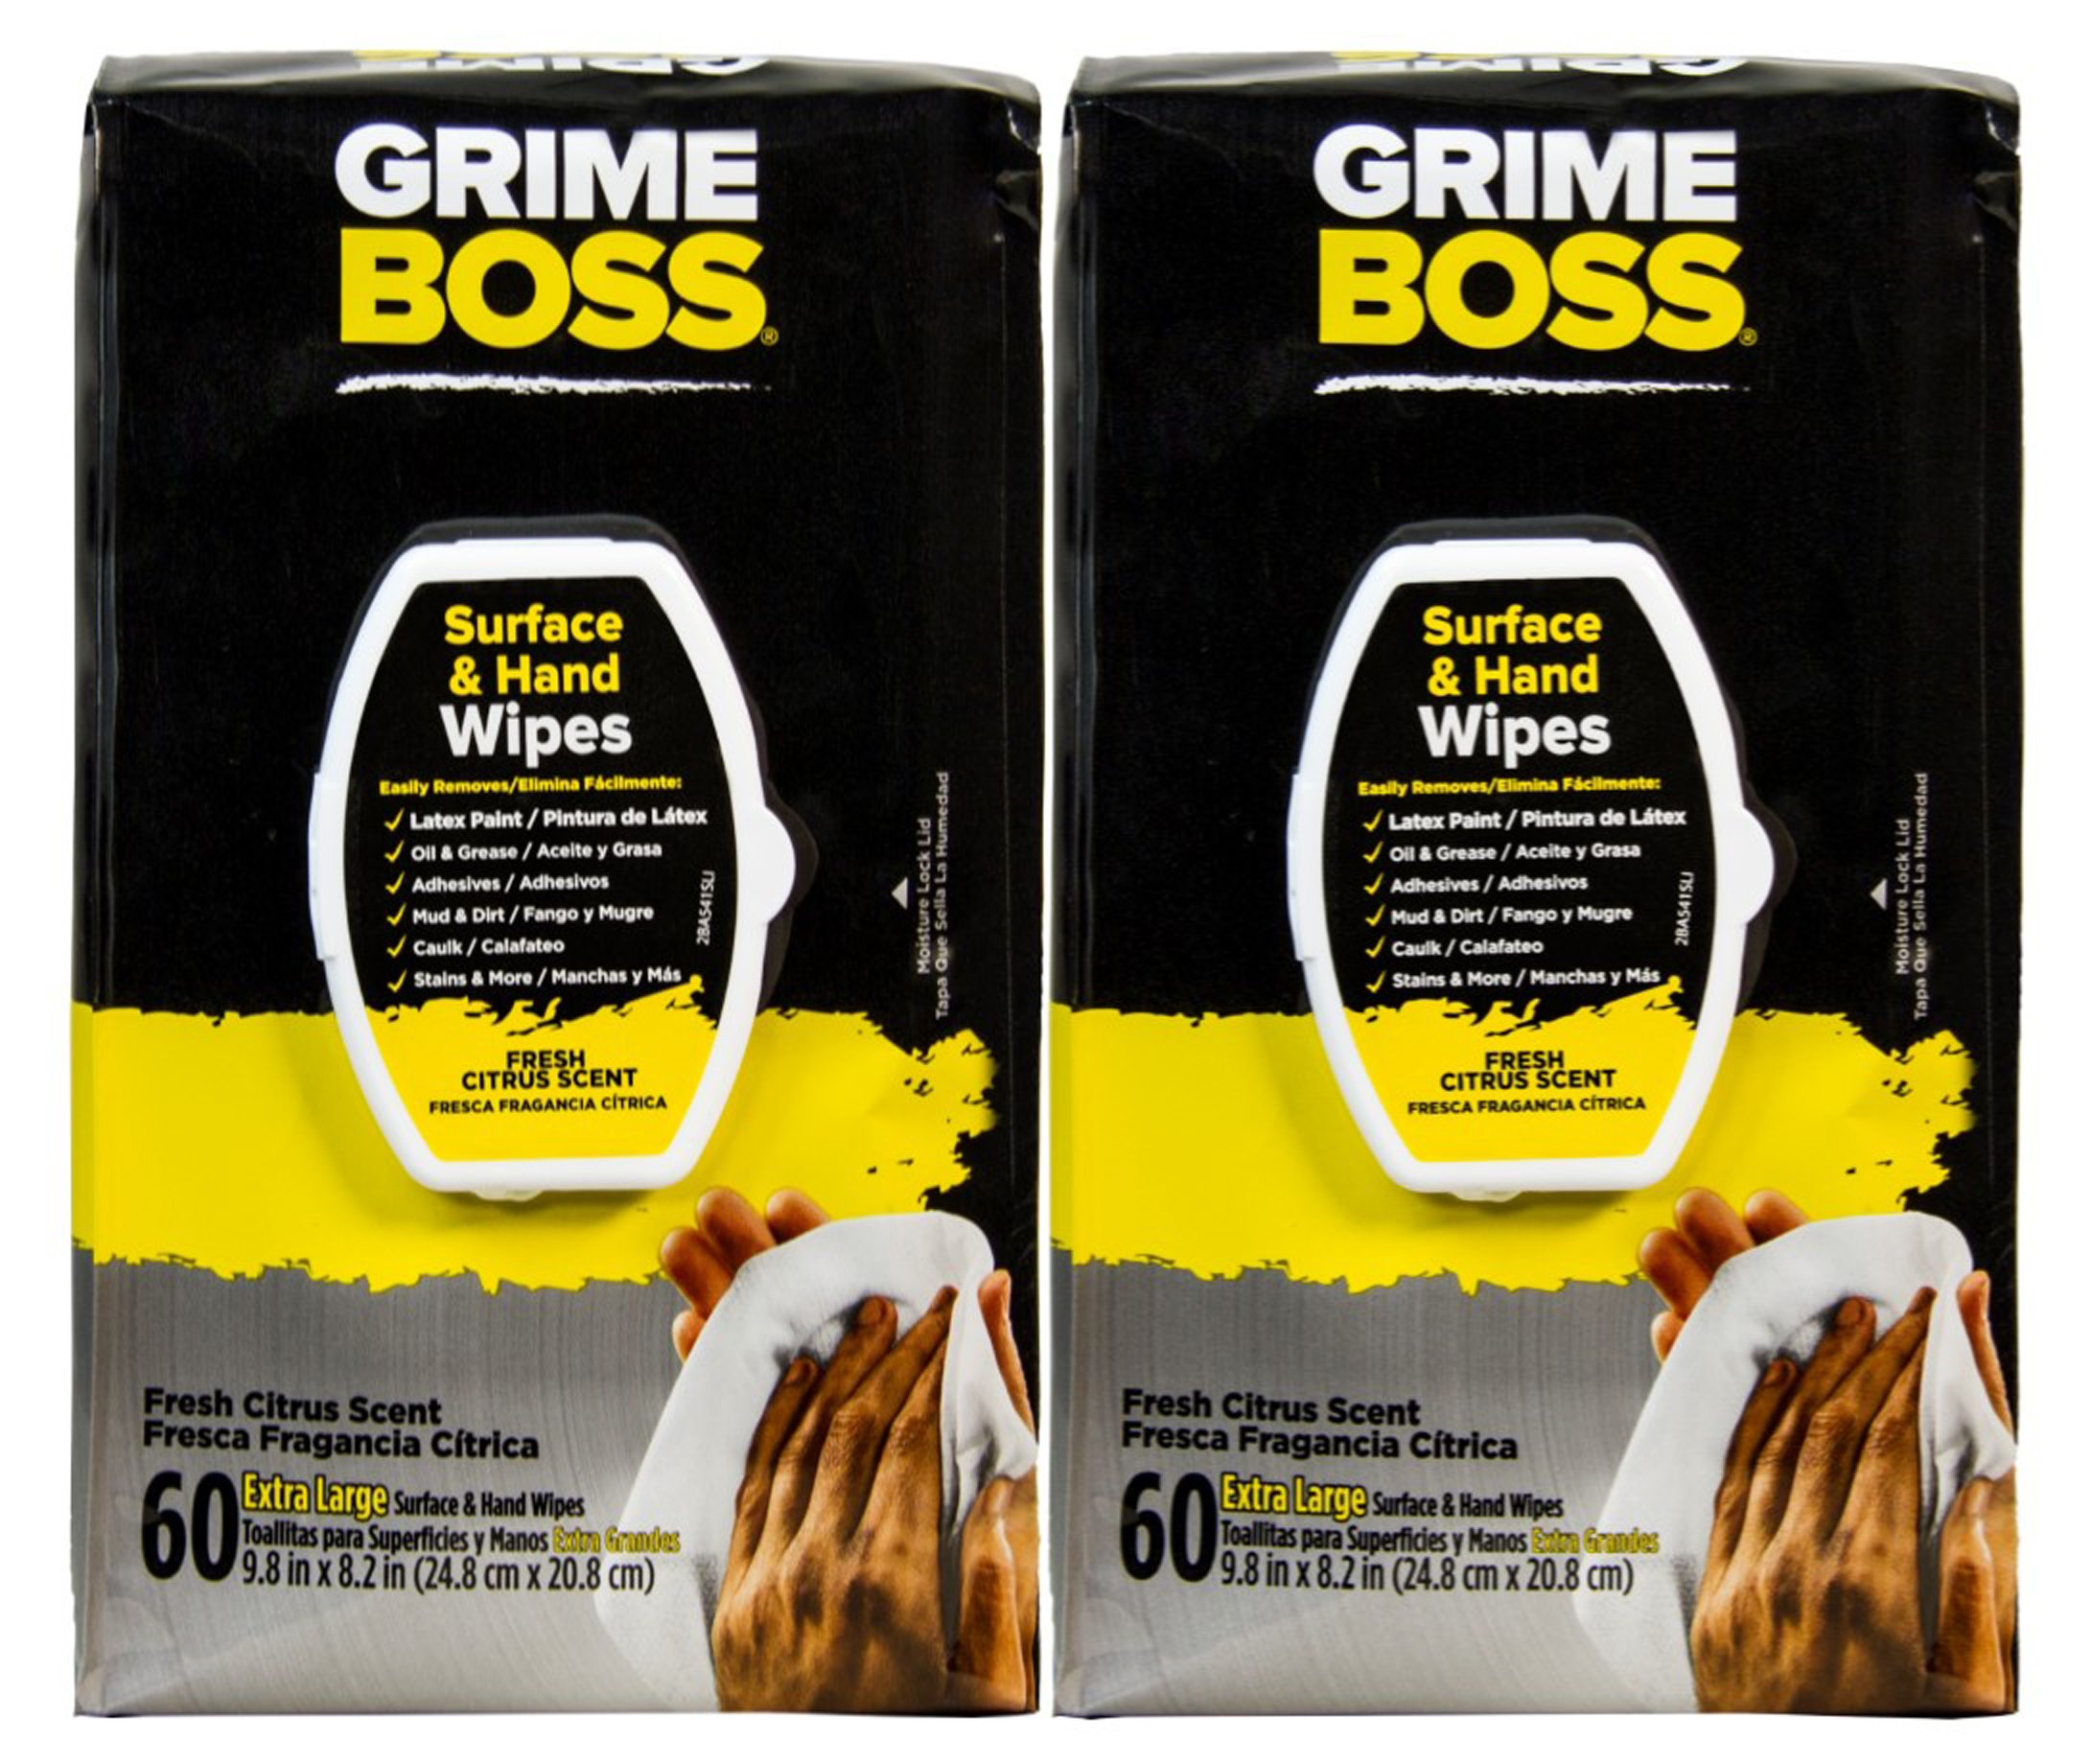 Grime Boss Heavy Duty Wipes Hands, Equipment, Garden, Auto, Camping, 120 Count (2x60 Count)